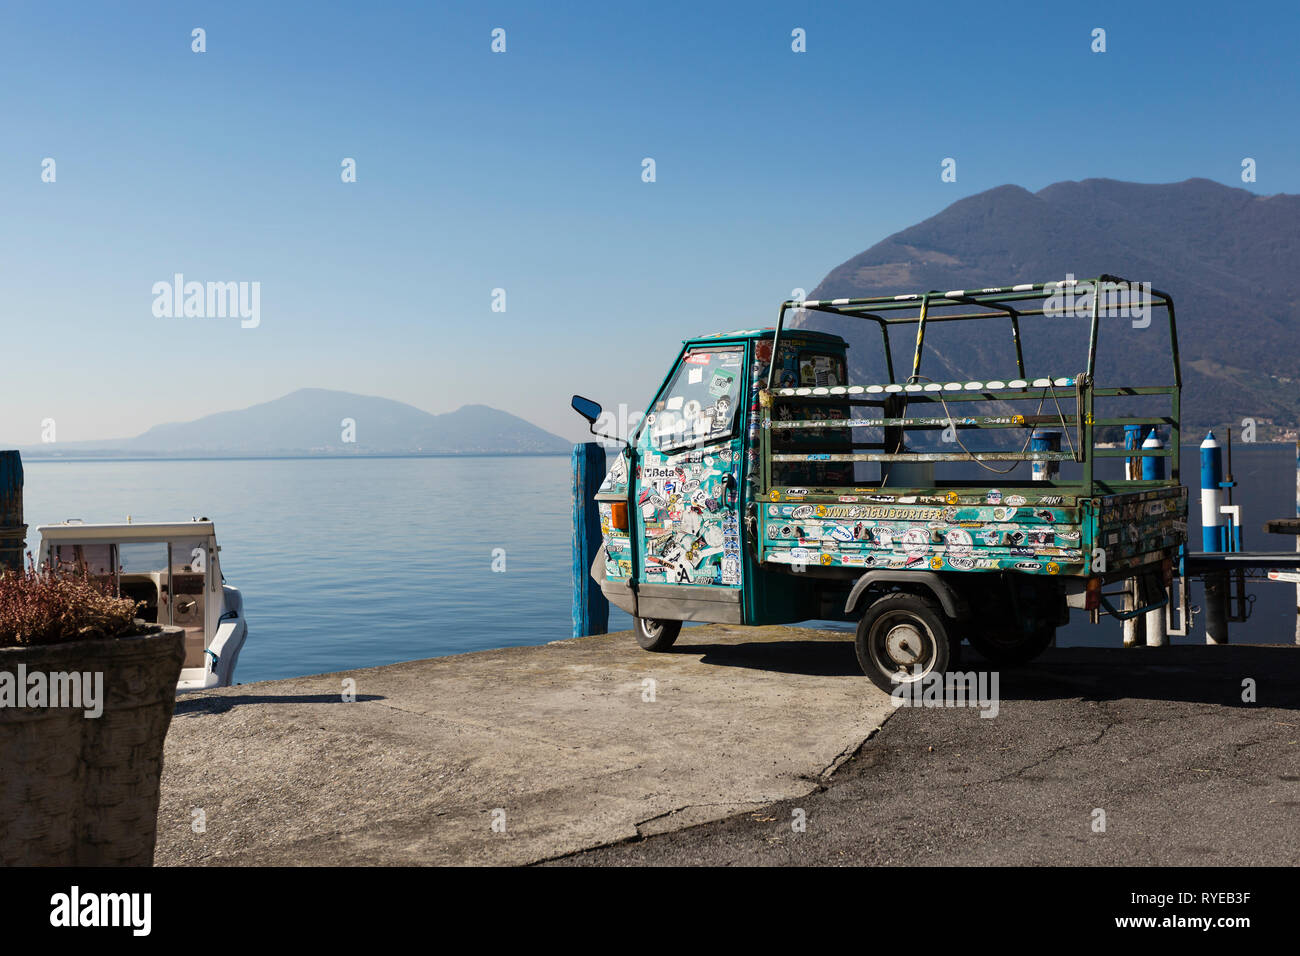 Ape Car by the Lake, Monte Isola, Iseo lake, Italy - Stock Image